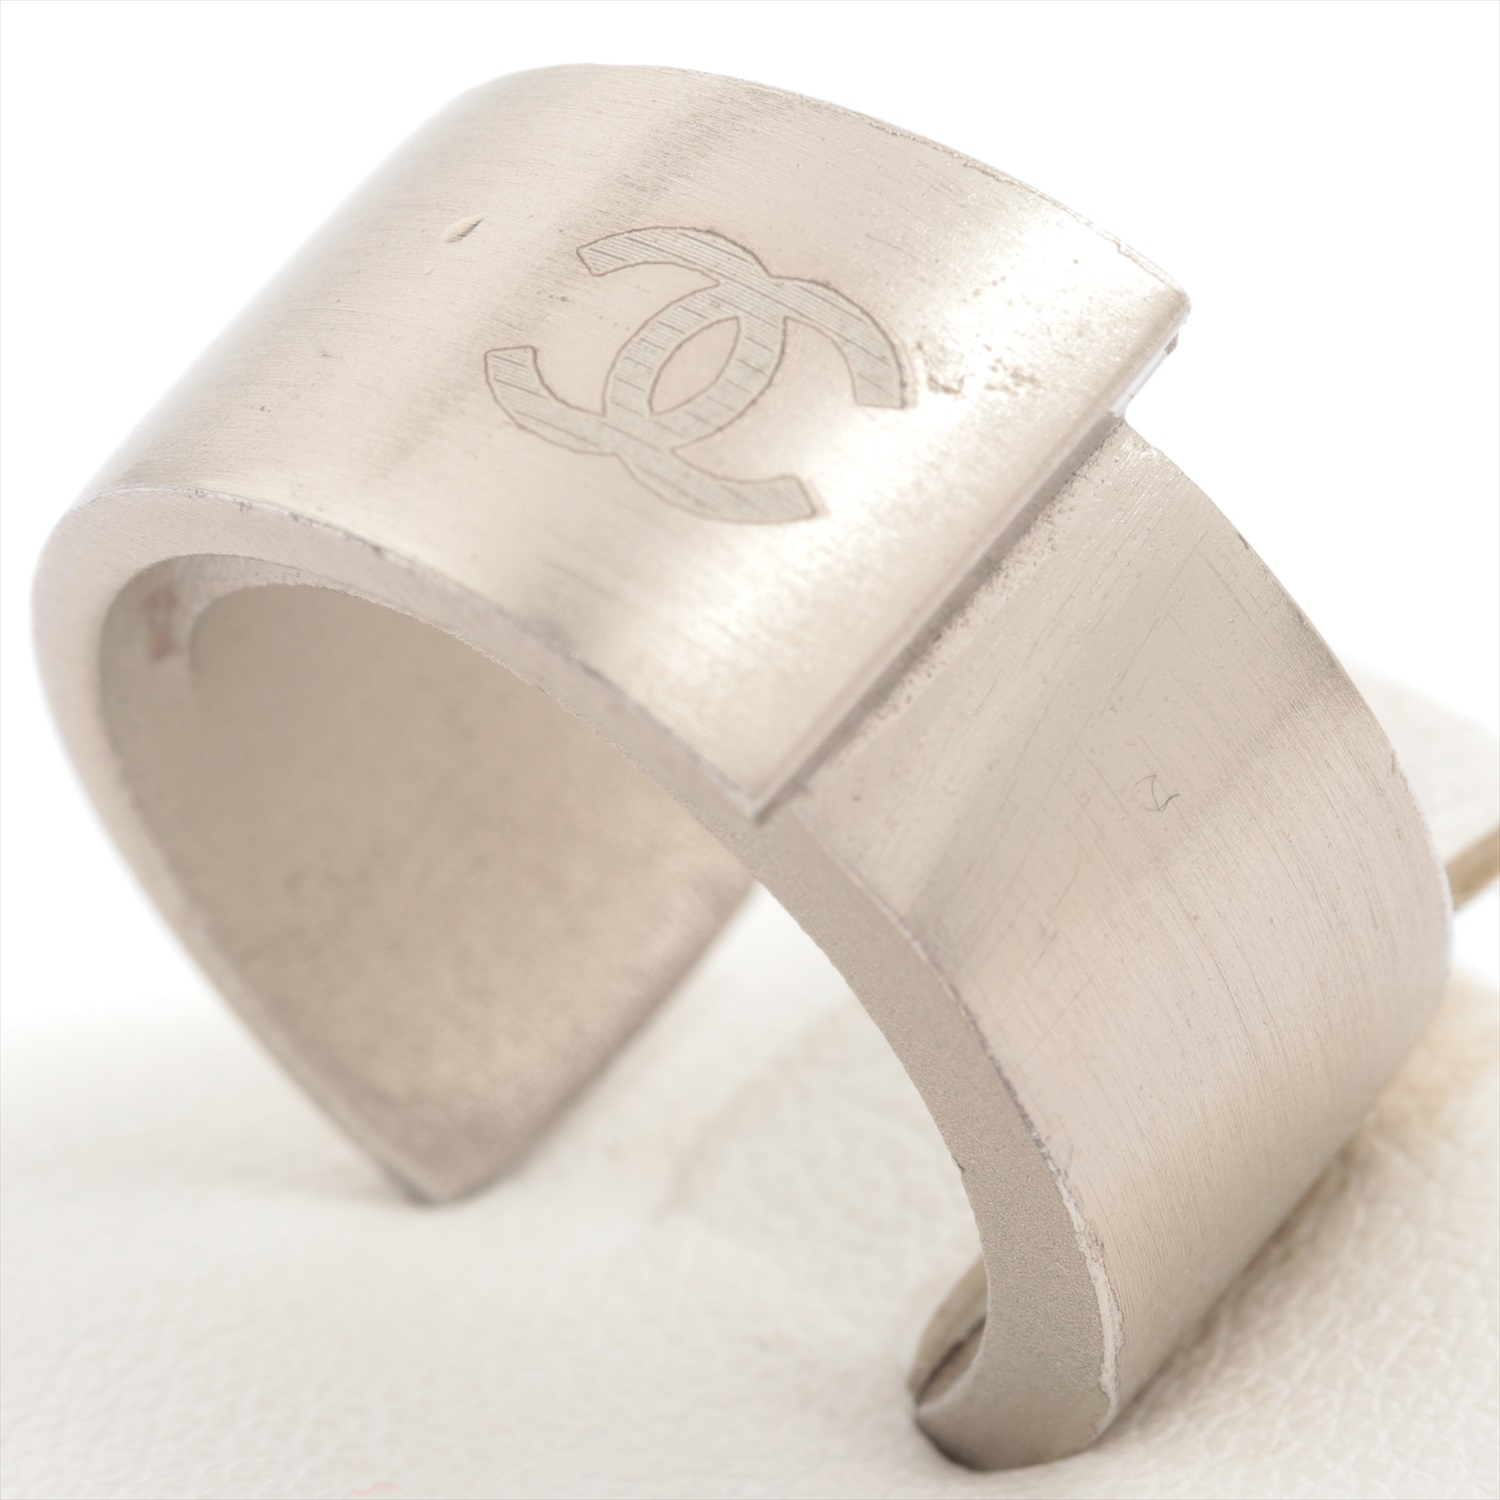 [Used goods] Chanel Coco mark ring metal material silver 00A